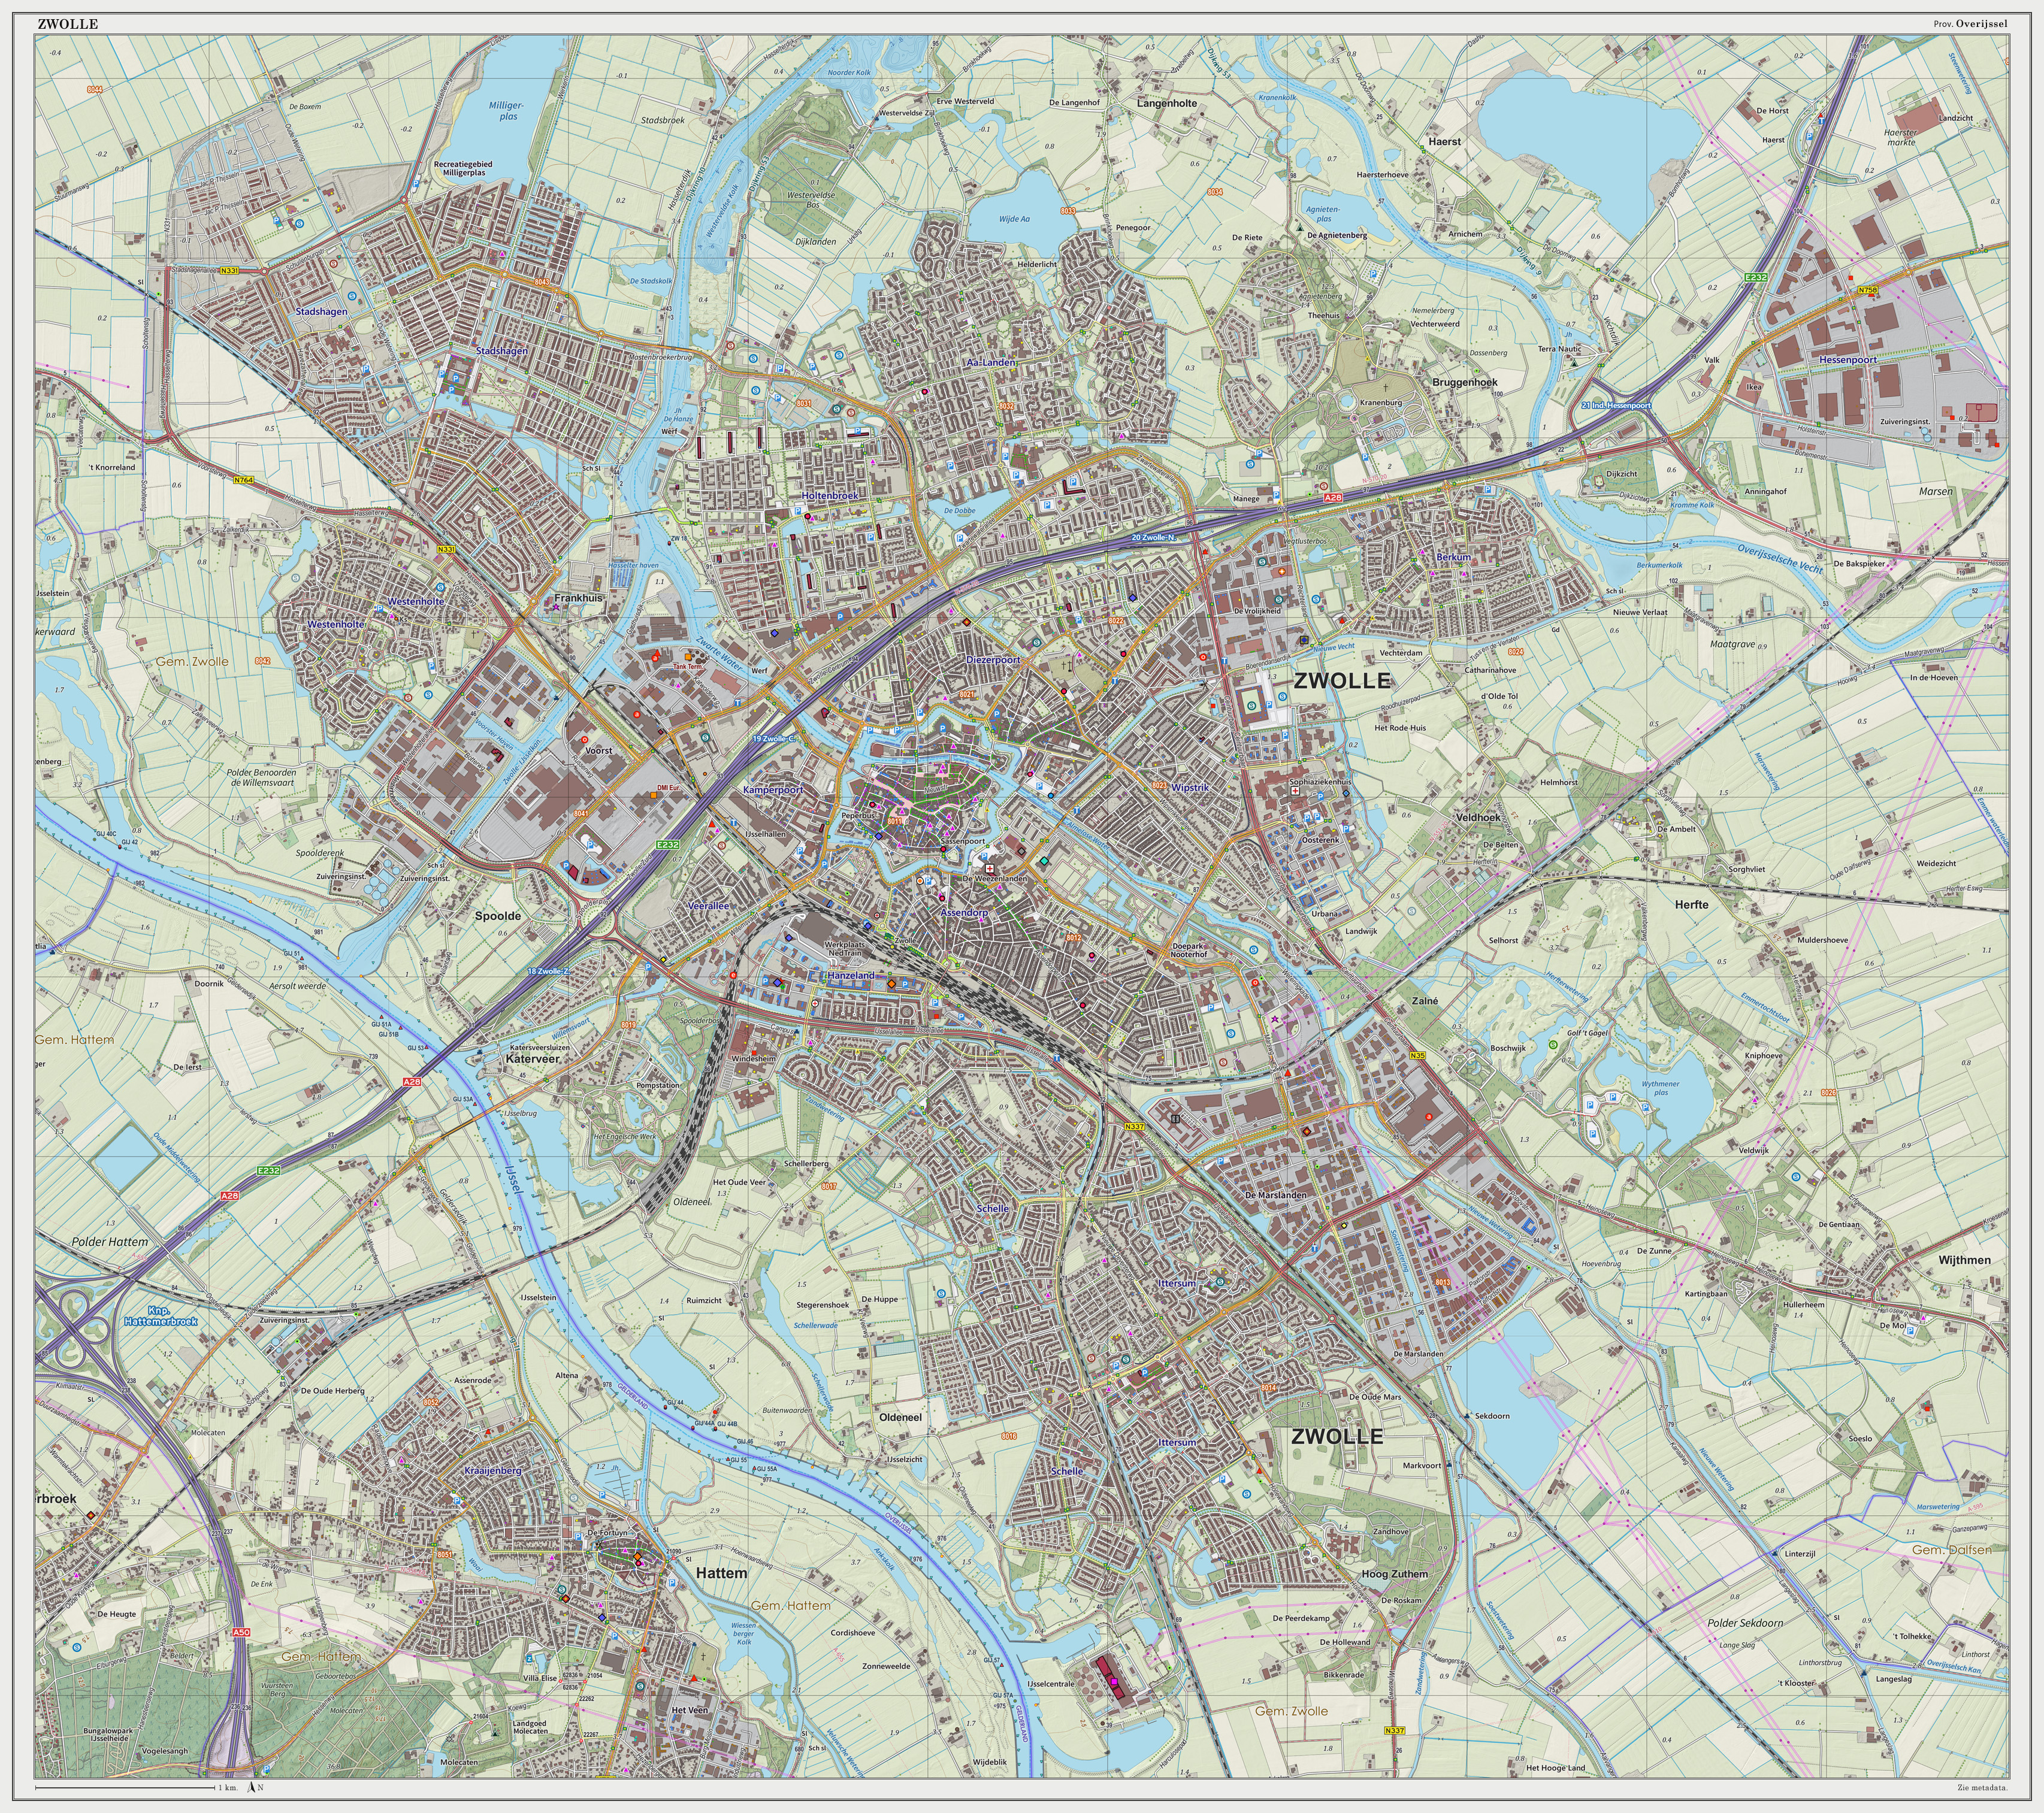 Map of Zwolle